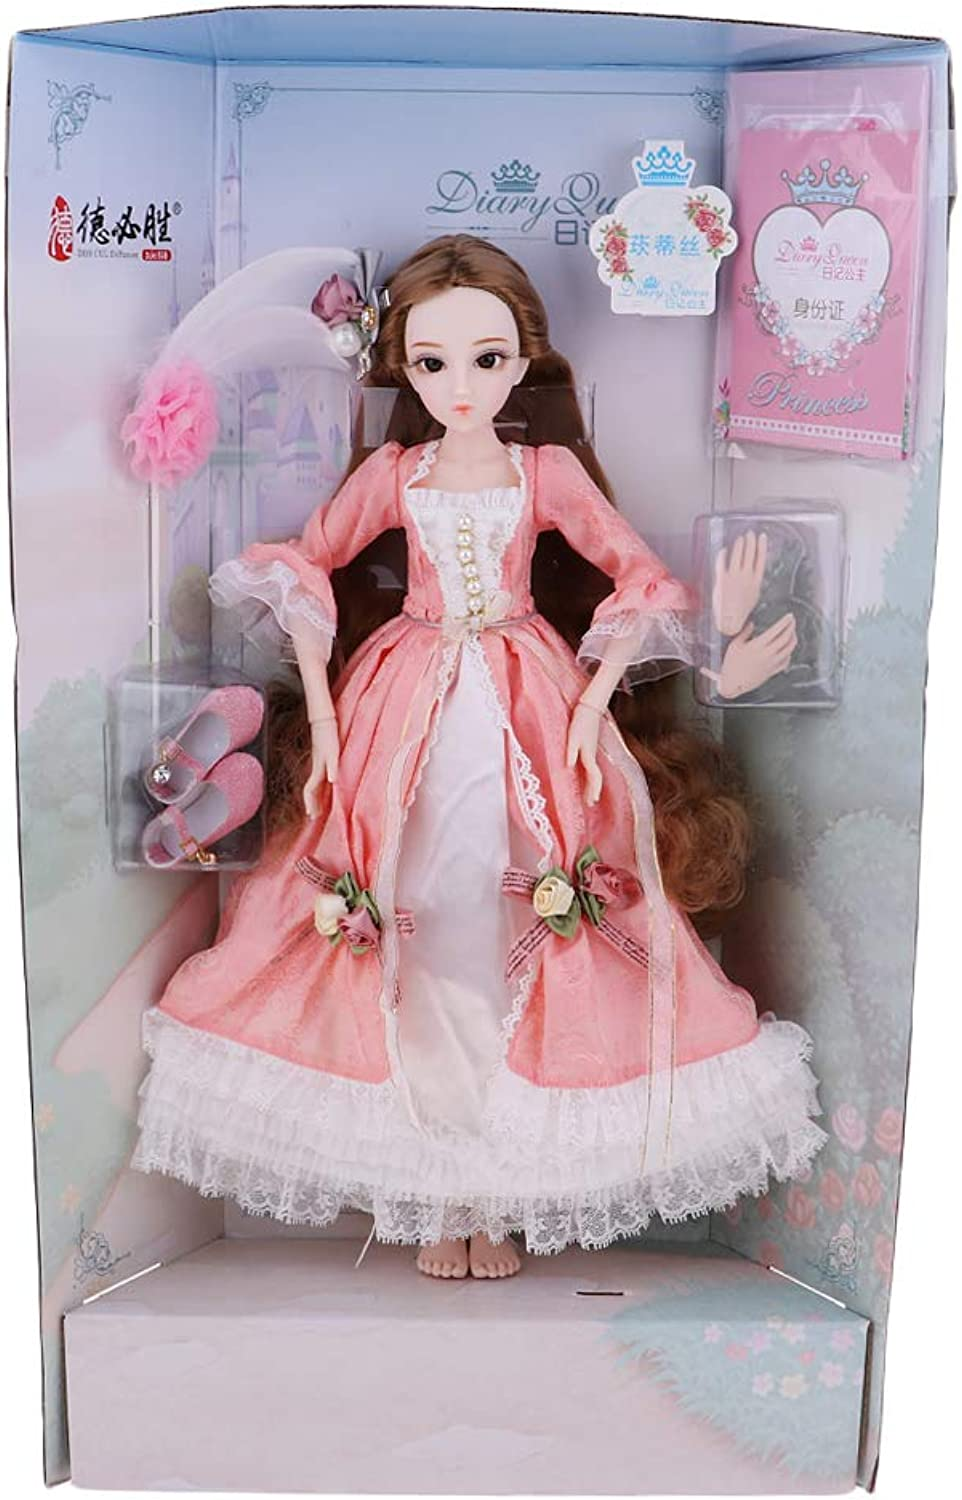 KESOTO 1 4 Fashion Princess Dolls in Beautiful Dress with Long Hair Model Beauty Doll for Girls Gift  1